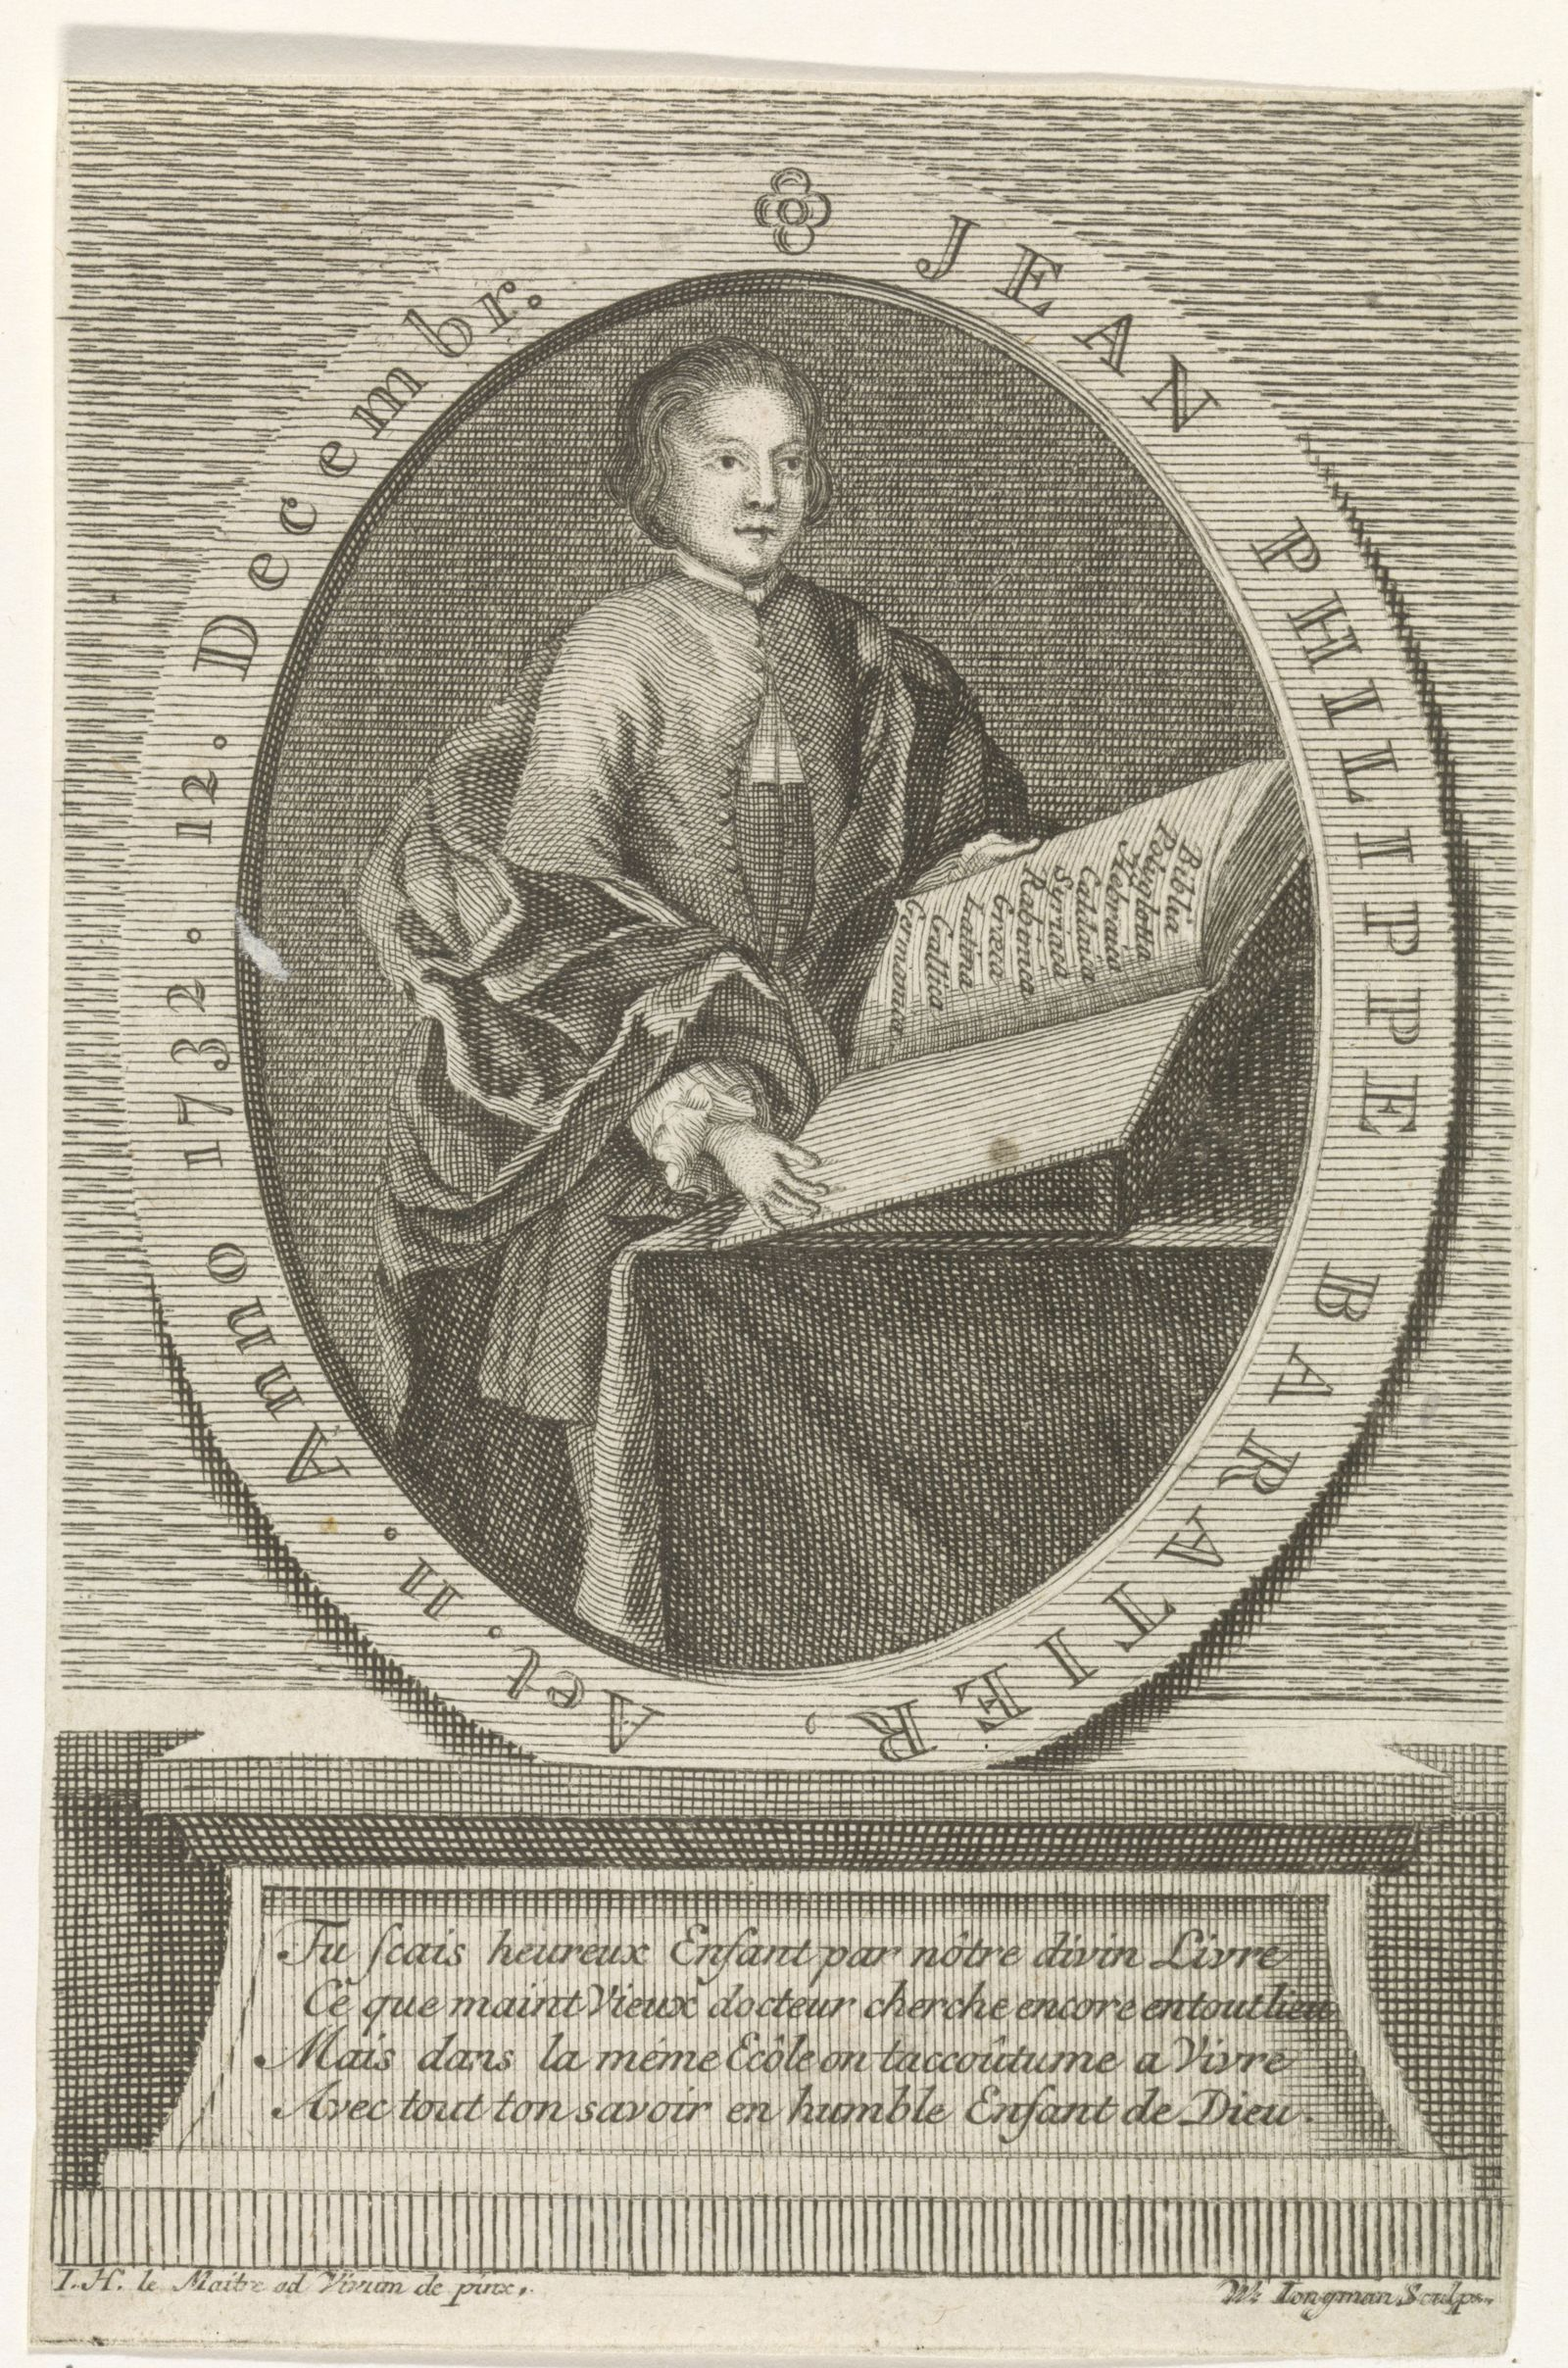 Portrait of Jean-Philippe Baratier, Portrait of the German scholar Jean-Philippe Baratier, aged 11 He is standing in fro